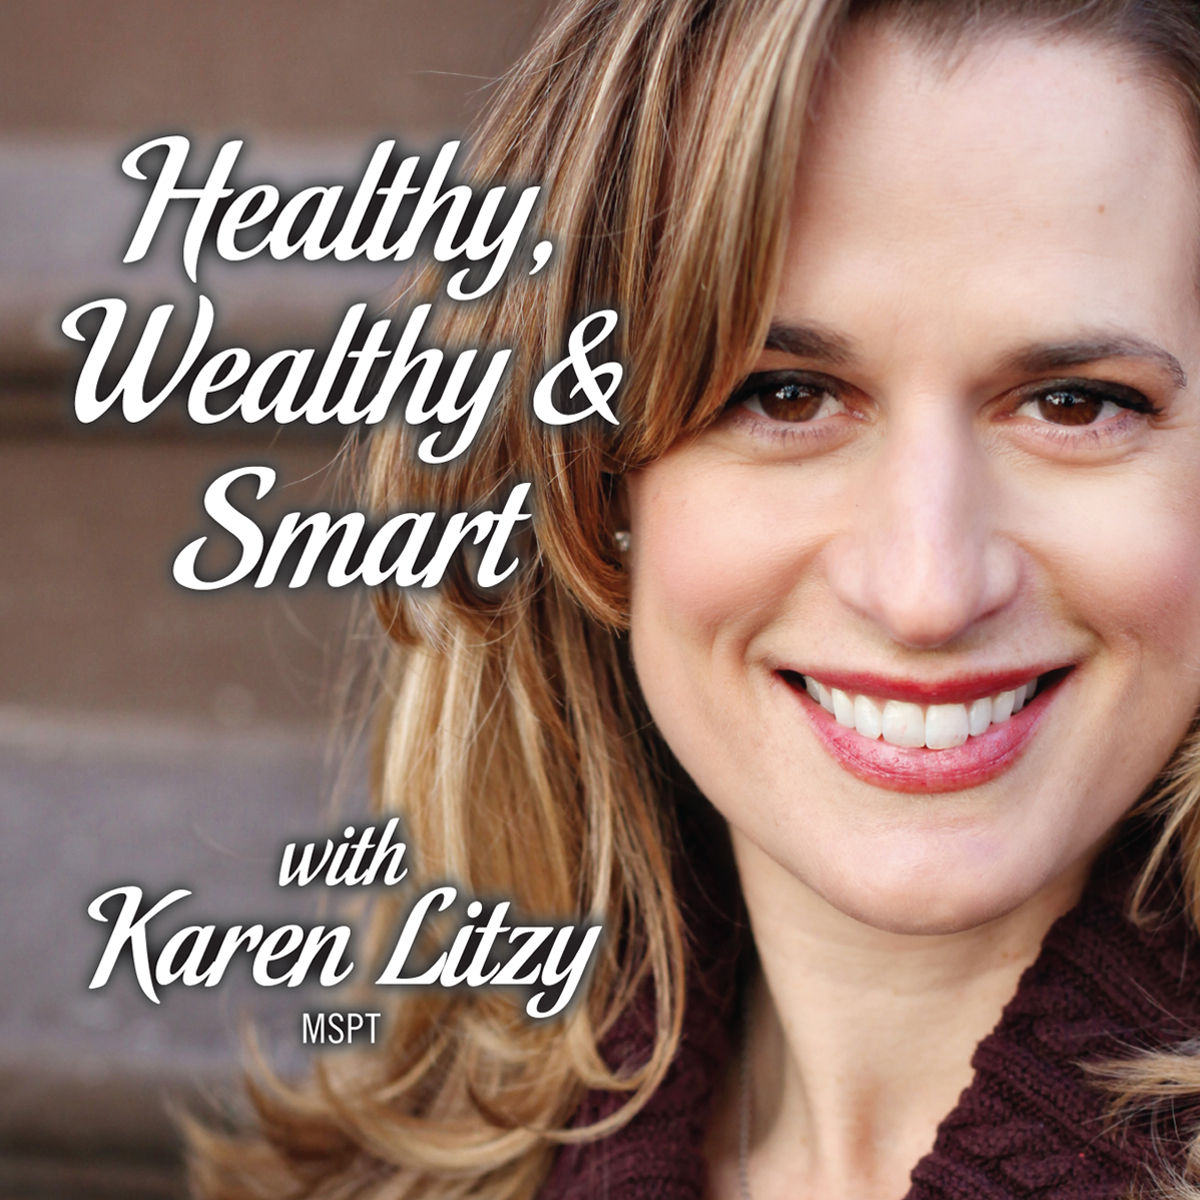 012: Physical therapist and entrepreneur Erica Meloe, PT, COMT, MBA